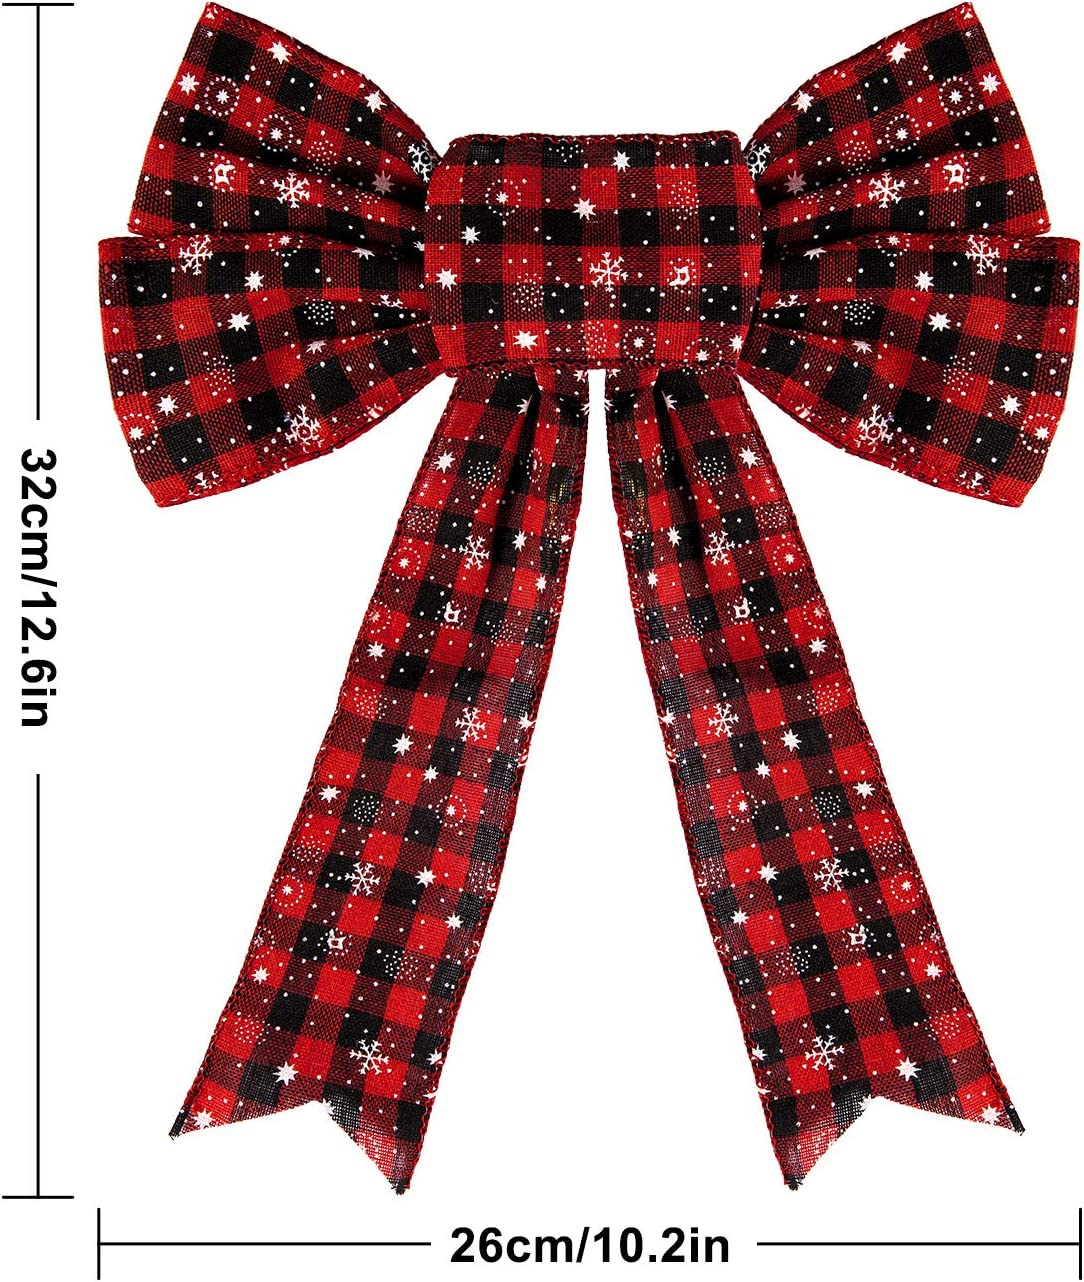 Whaline Large Buffalo Plaid Bows Christmas Wreath Bows 12 x 10in Bows Tree Bows Decoration Burlap Bows for Xmas Party New Year 4pcs Red